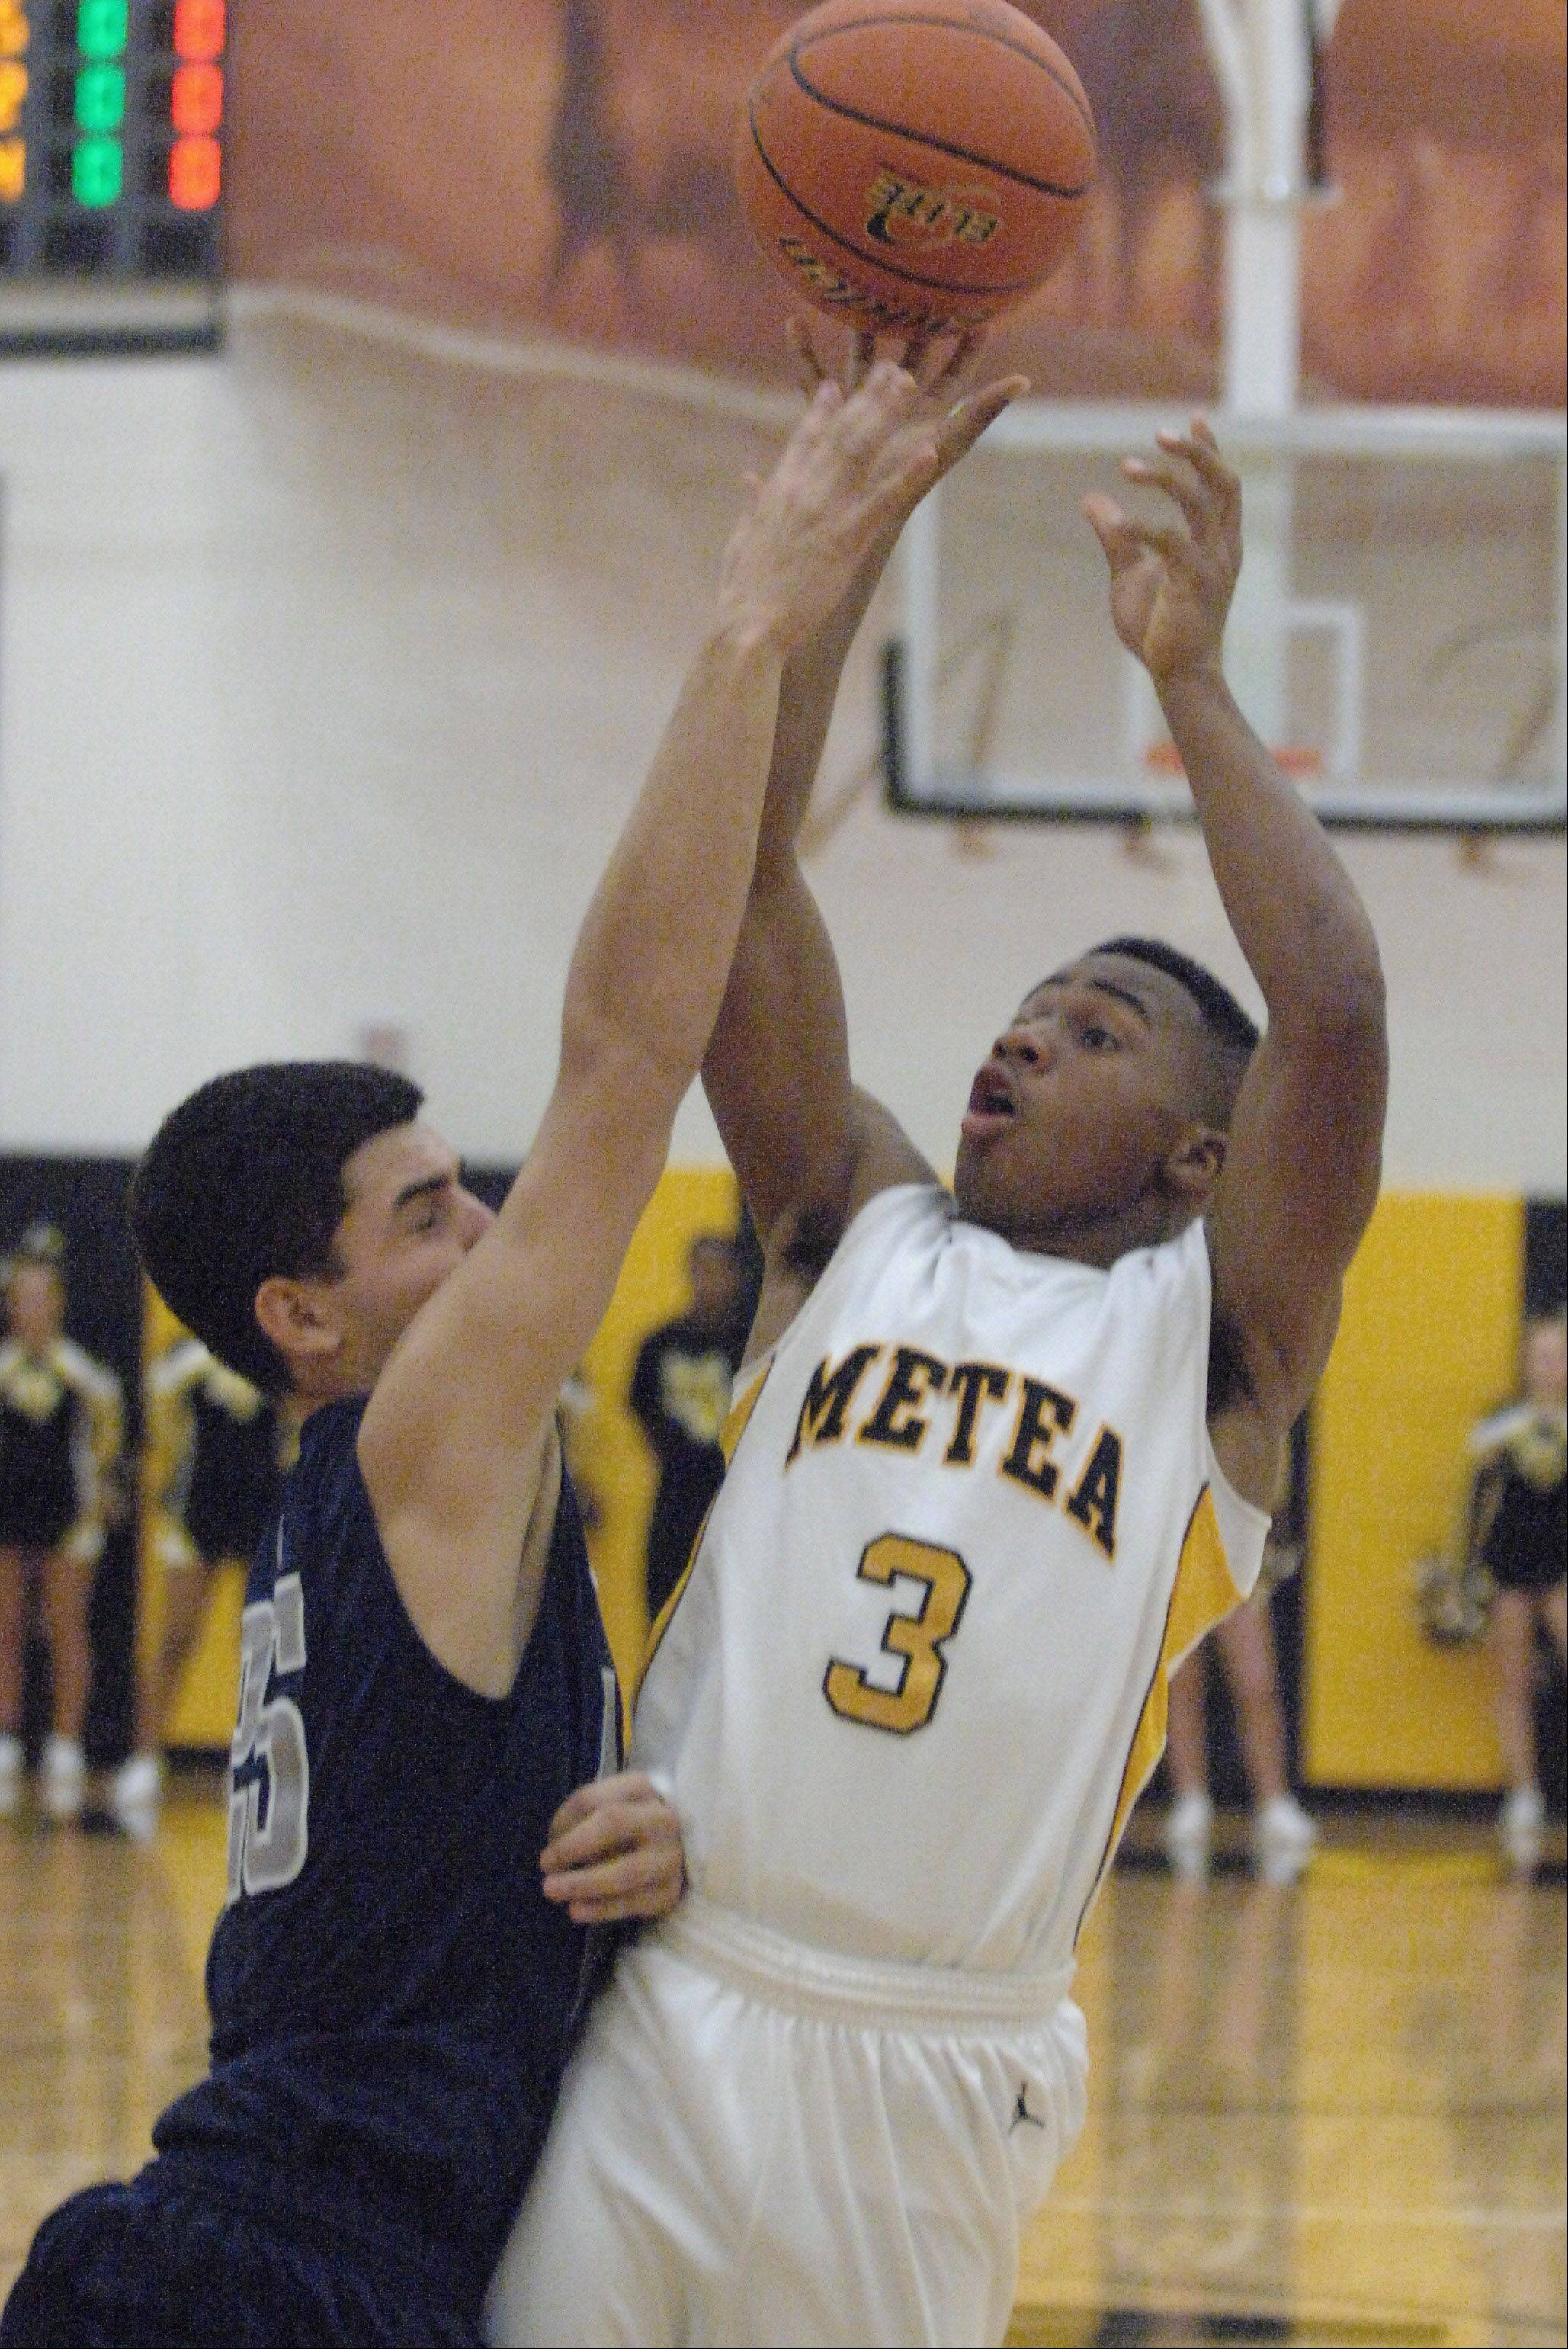 Bryson Oliver of Metea Valley takes a shot against Lake Park.